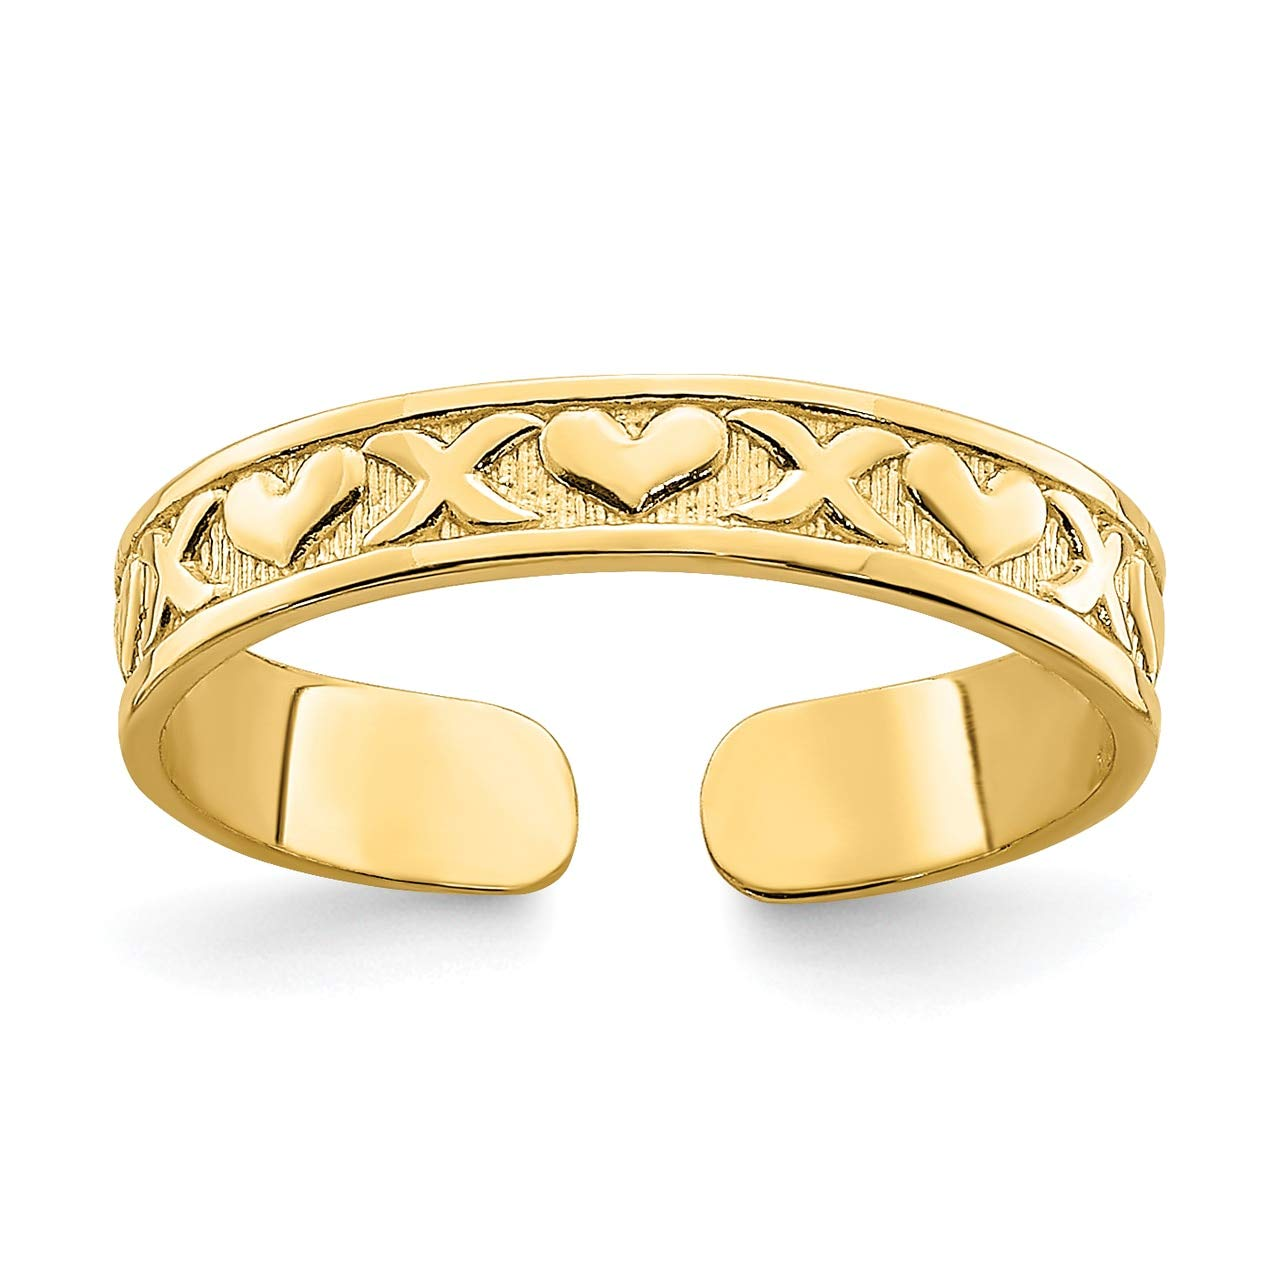 Lex & Lu 14k Yellow Gold Small X and Hearts Adjustable Toe Ring by Lex & Lu